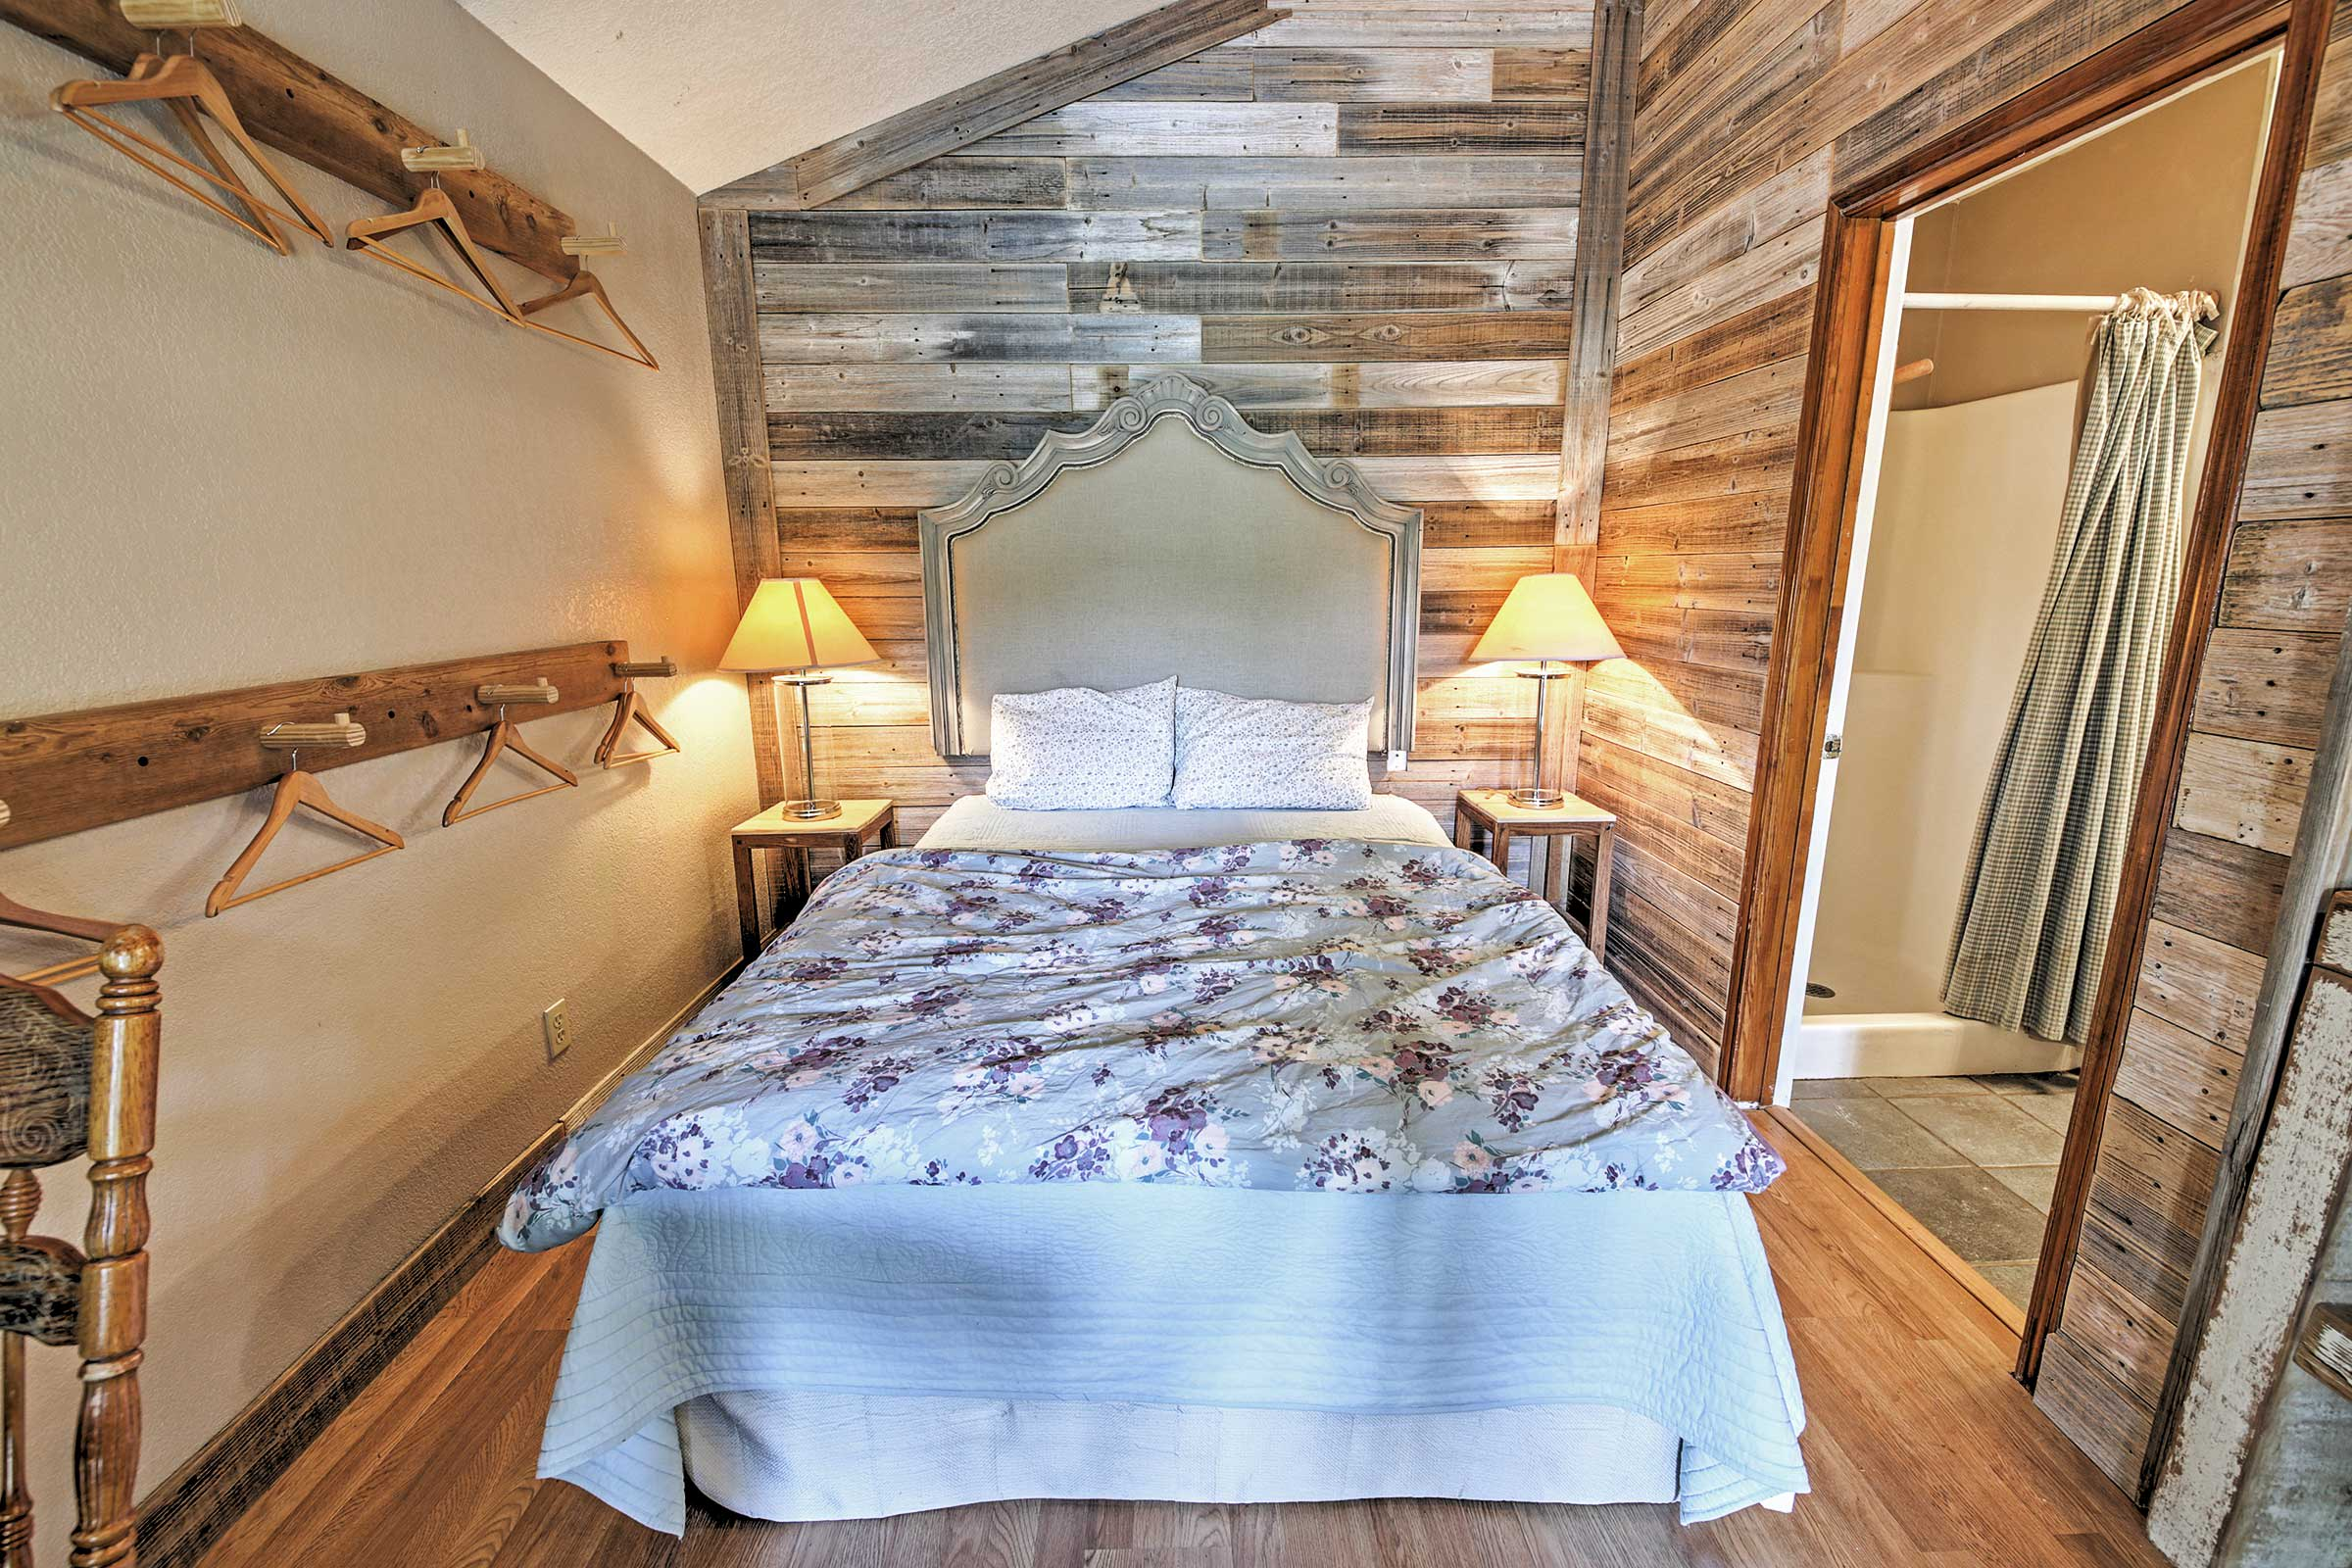 This alluring bed is calling your name!